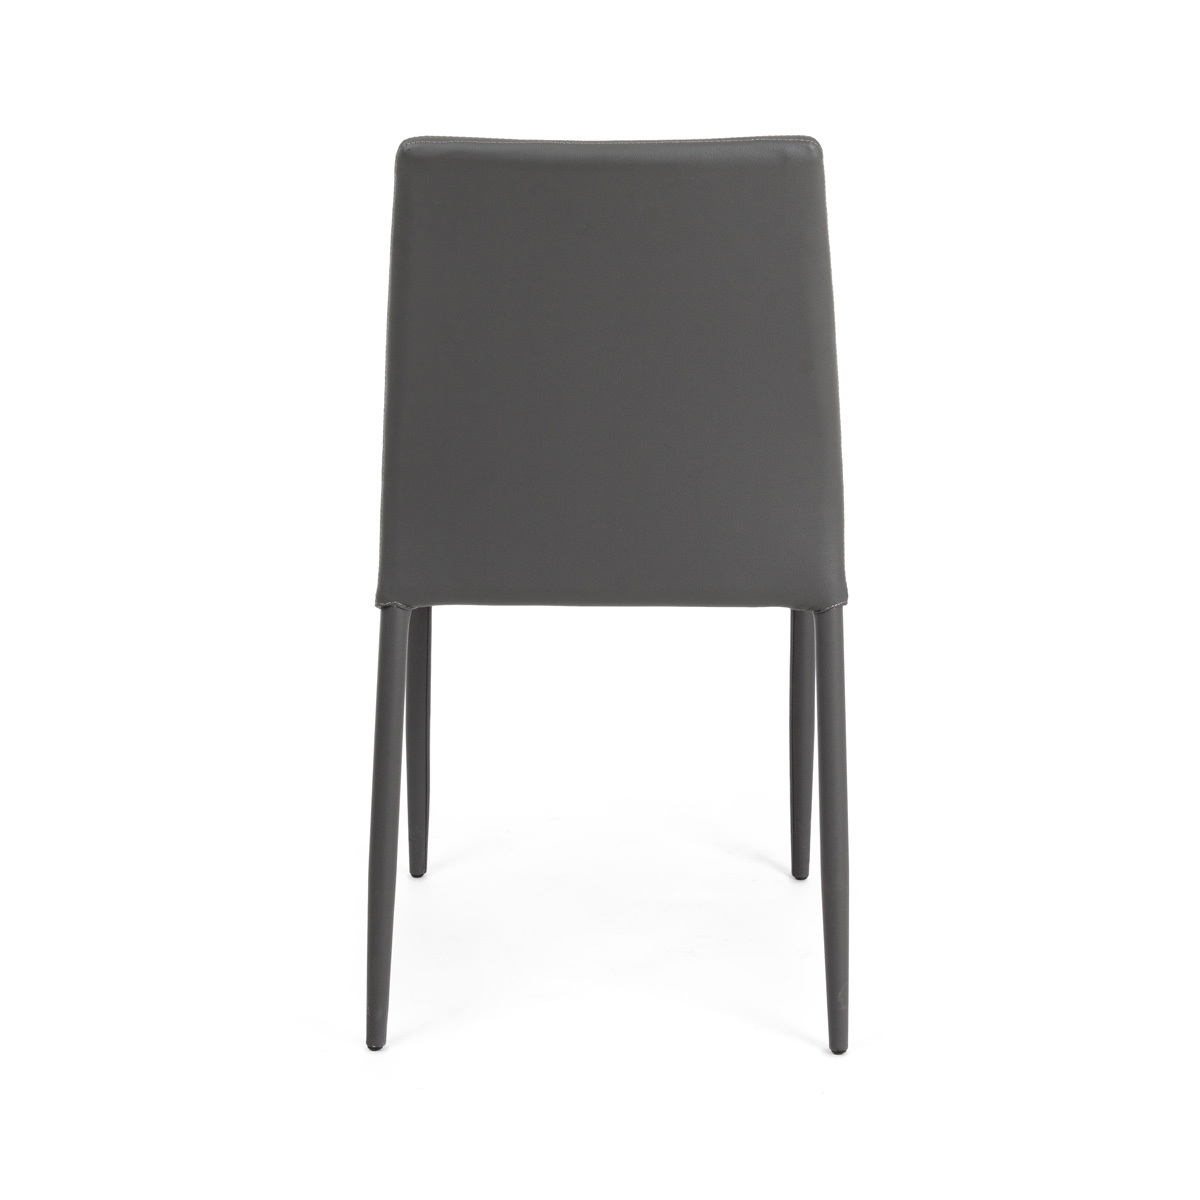 Photos 3: Bizzotto Chair in metal and eco-leather - anthracite 0731797